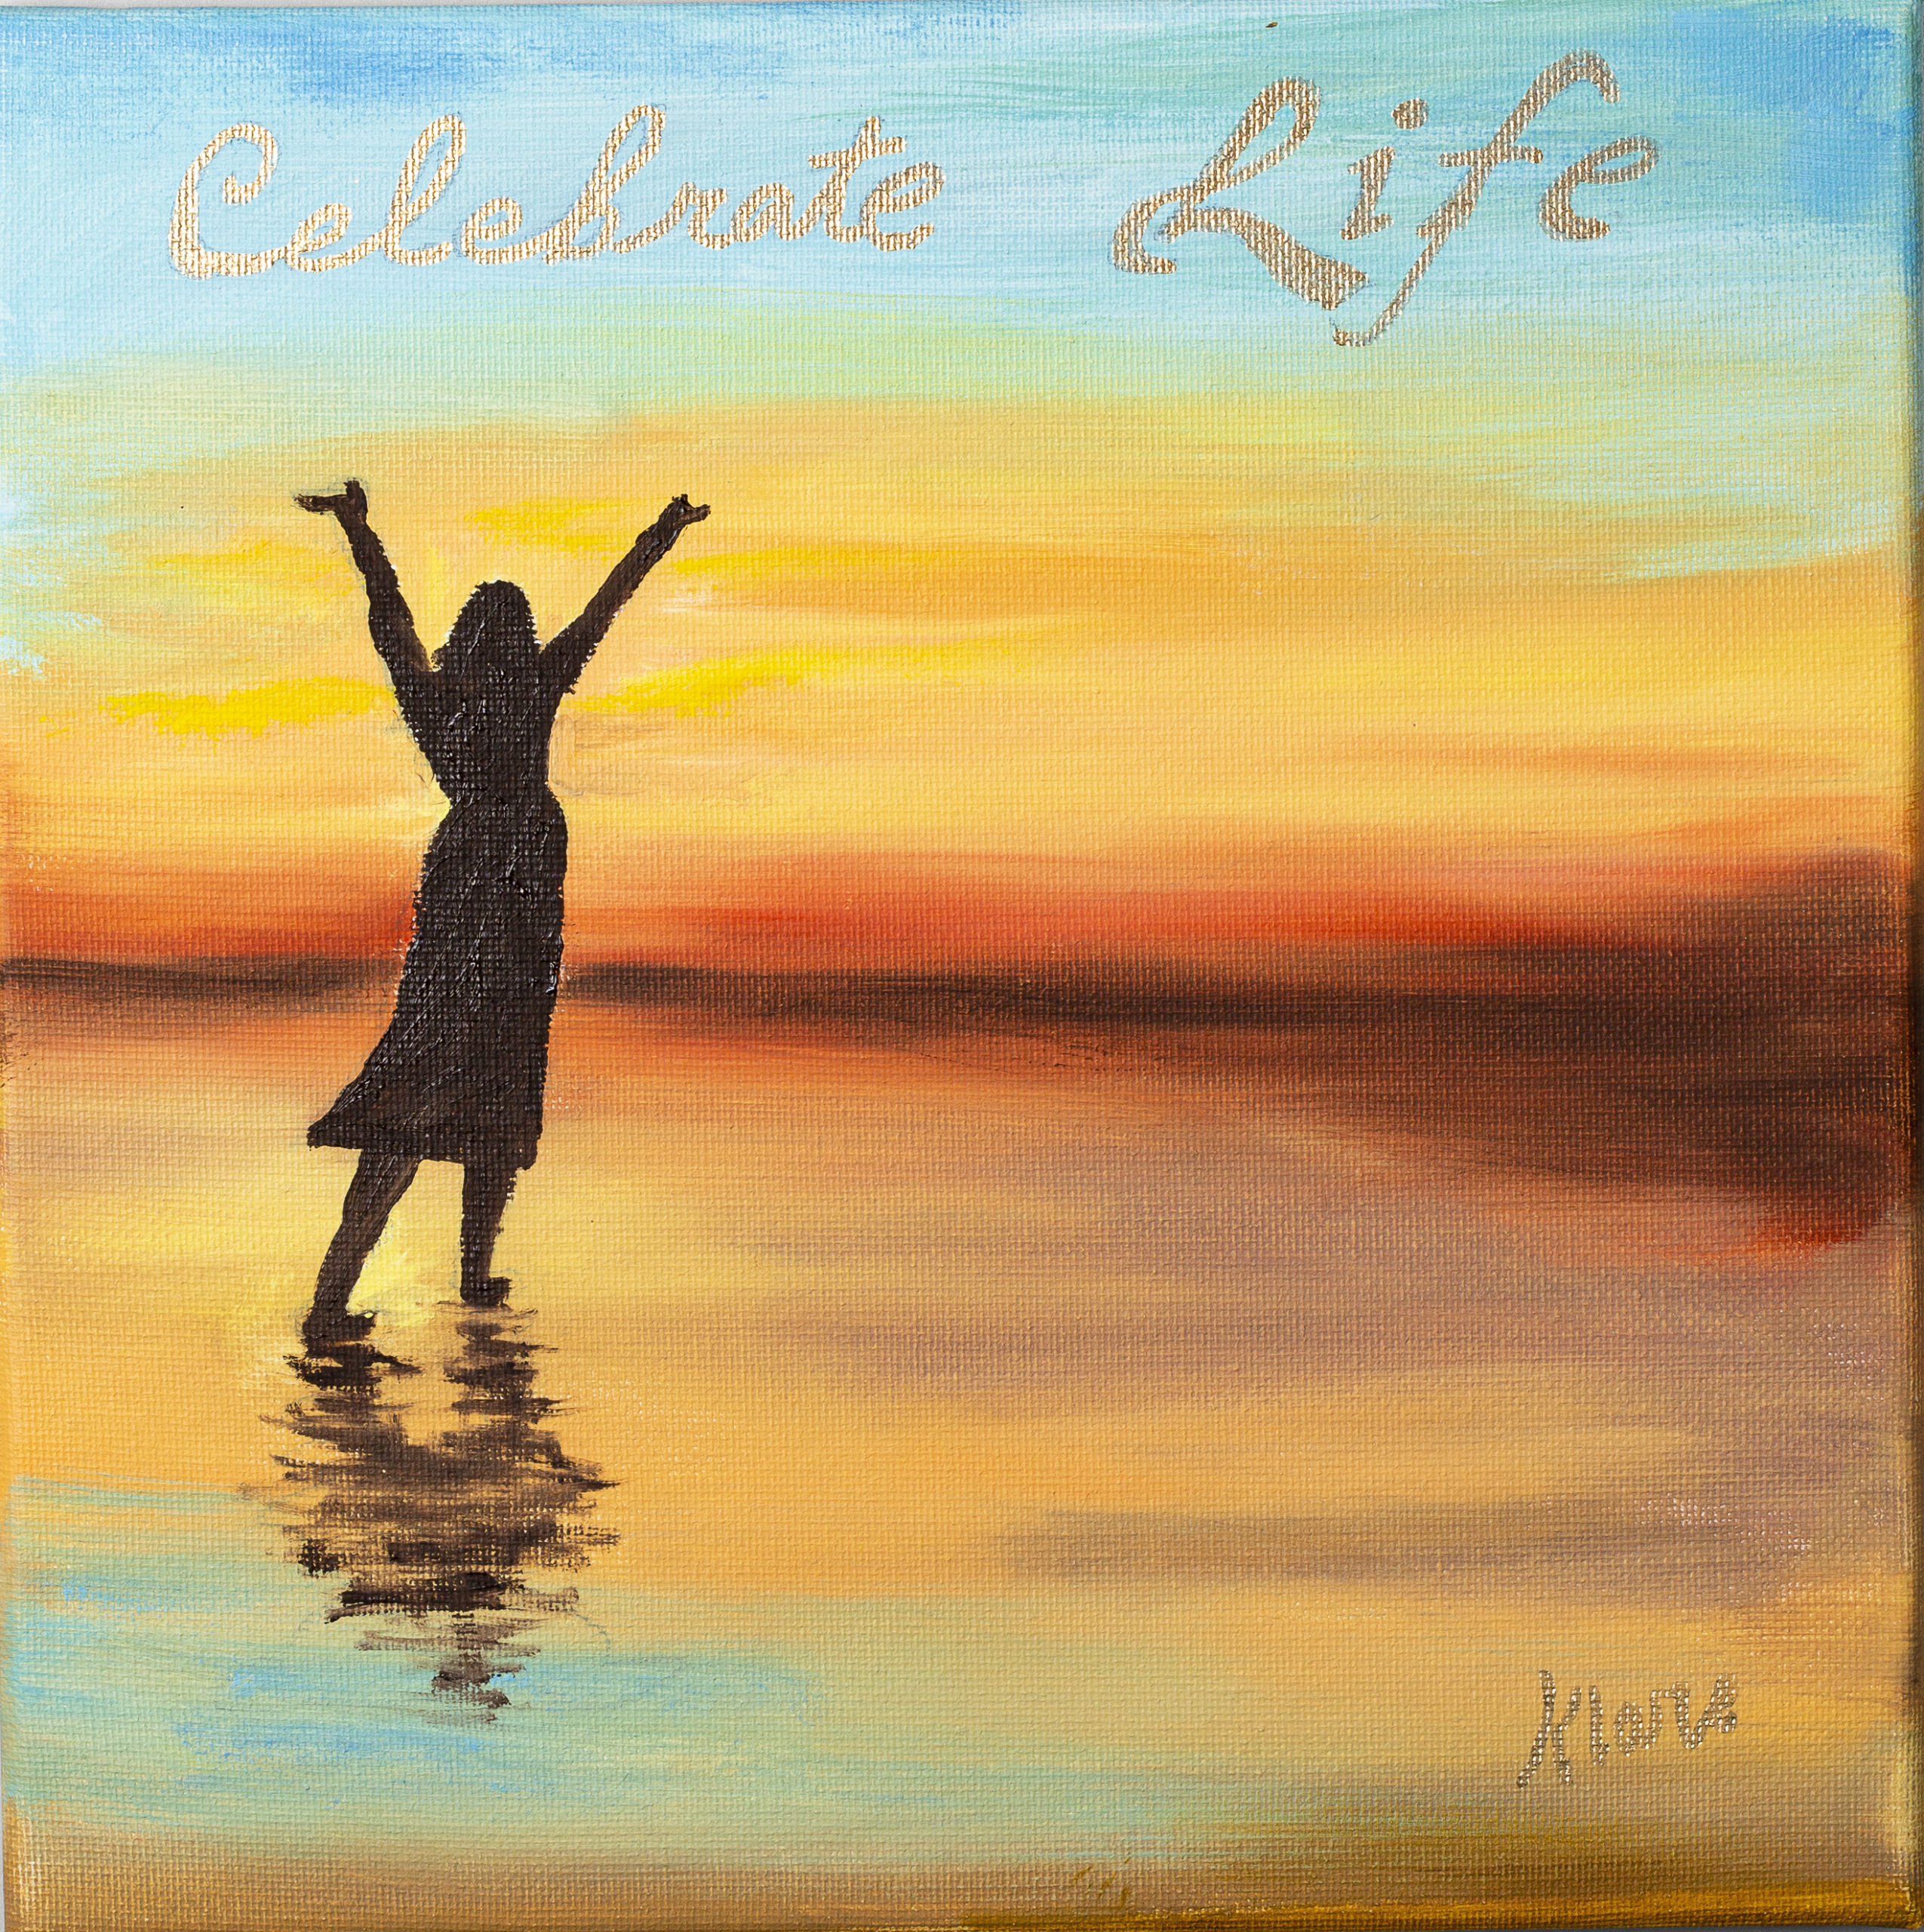 CLAIRE MESSIER, CELEBRATE LIFE: With this disease I celebrate every day I am alive!